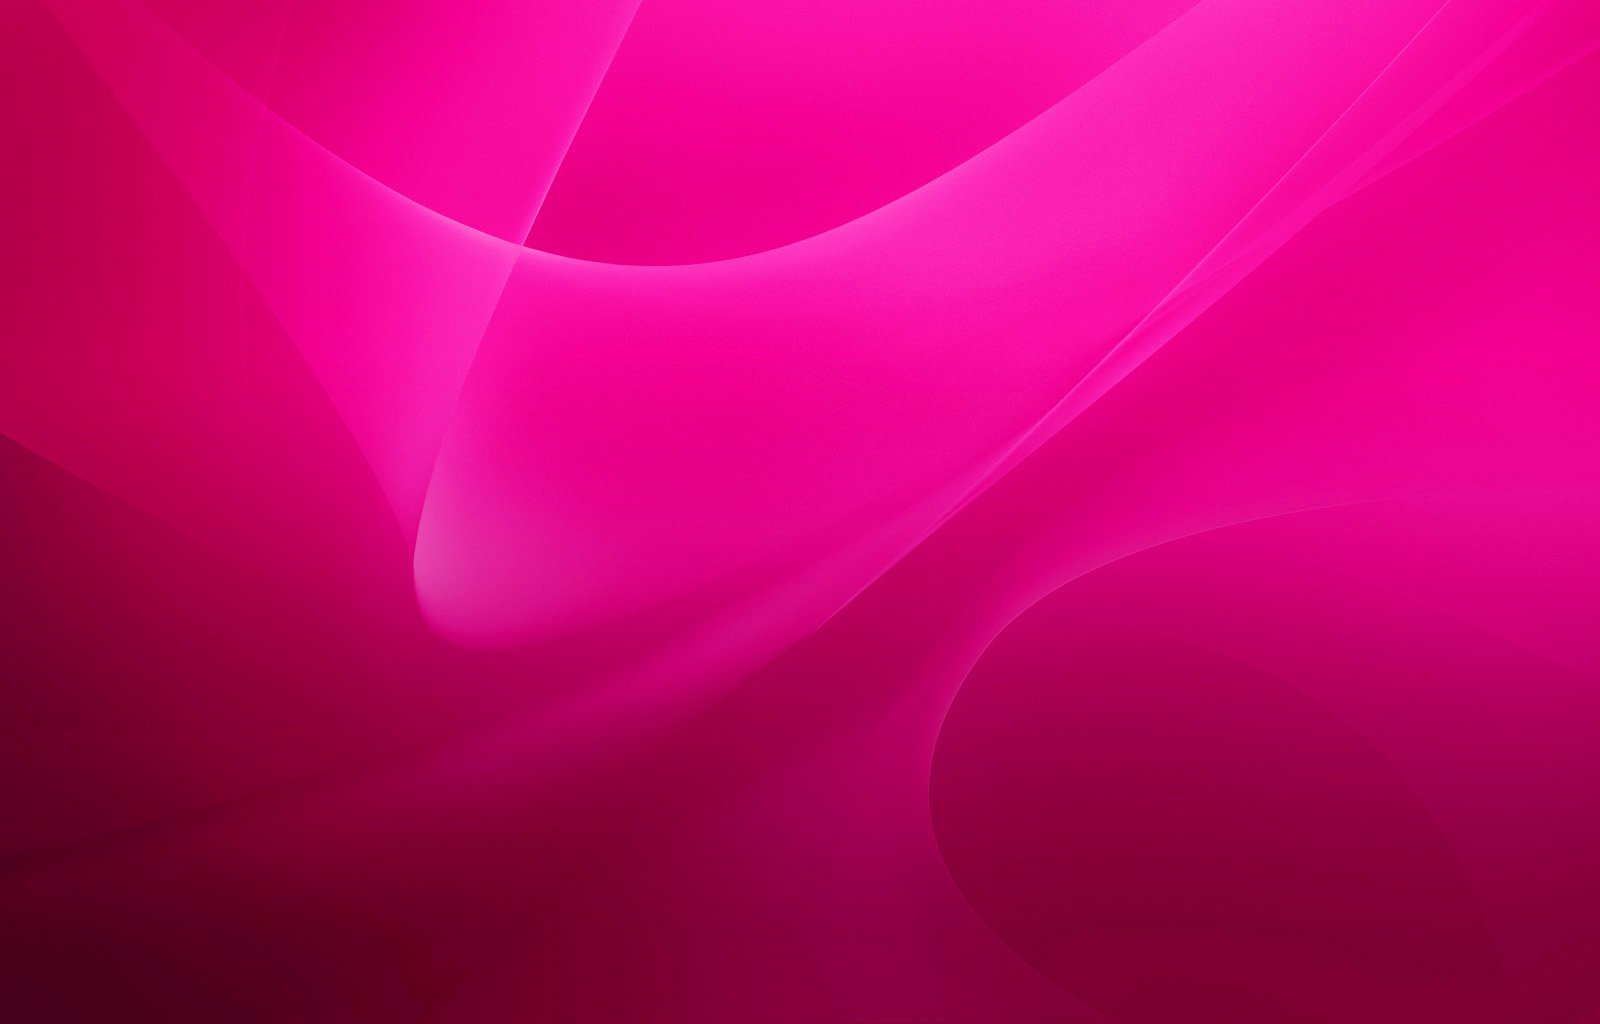 Wallpaper Pink Full HD 1080p Best HD Pink Backgrounds 1600x1024